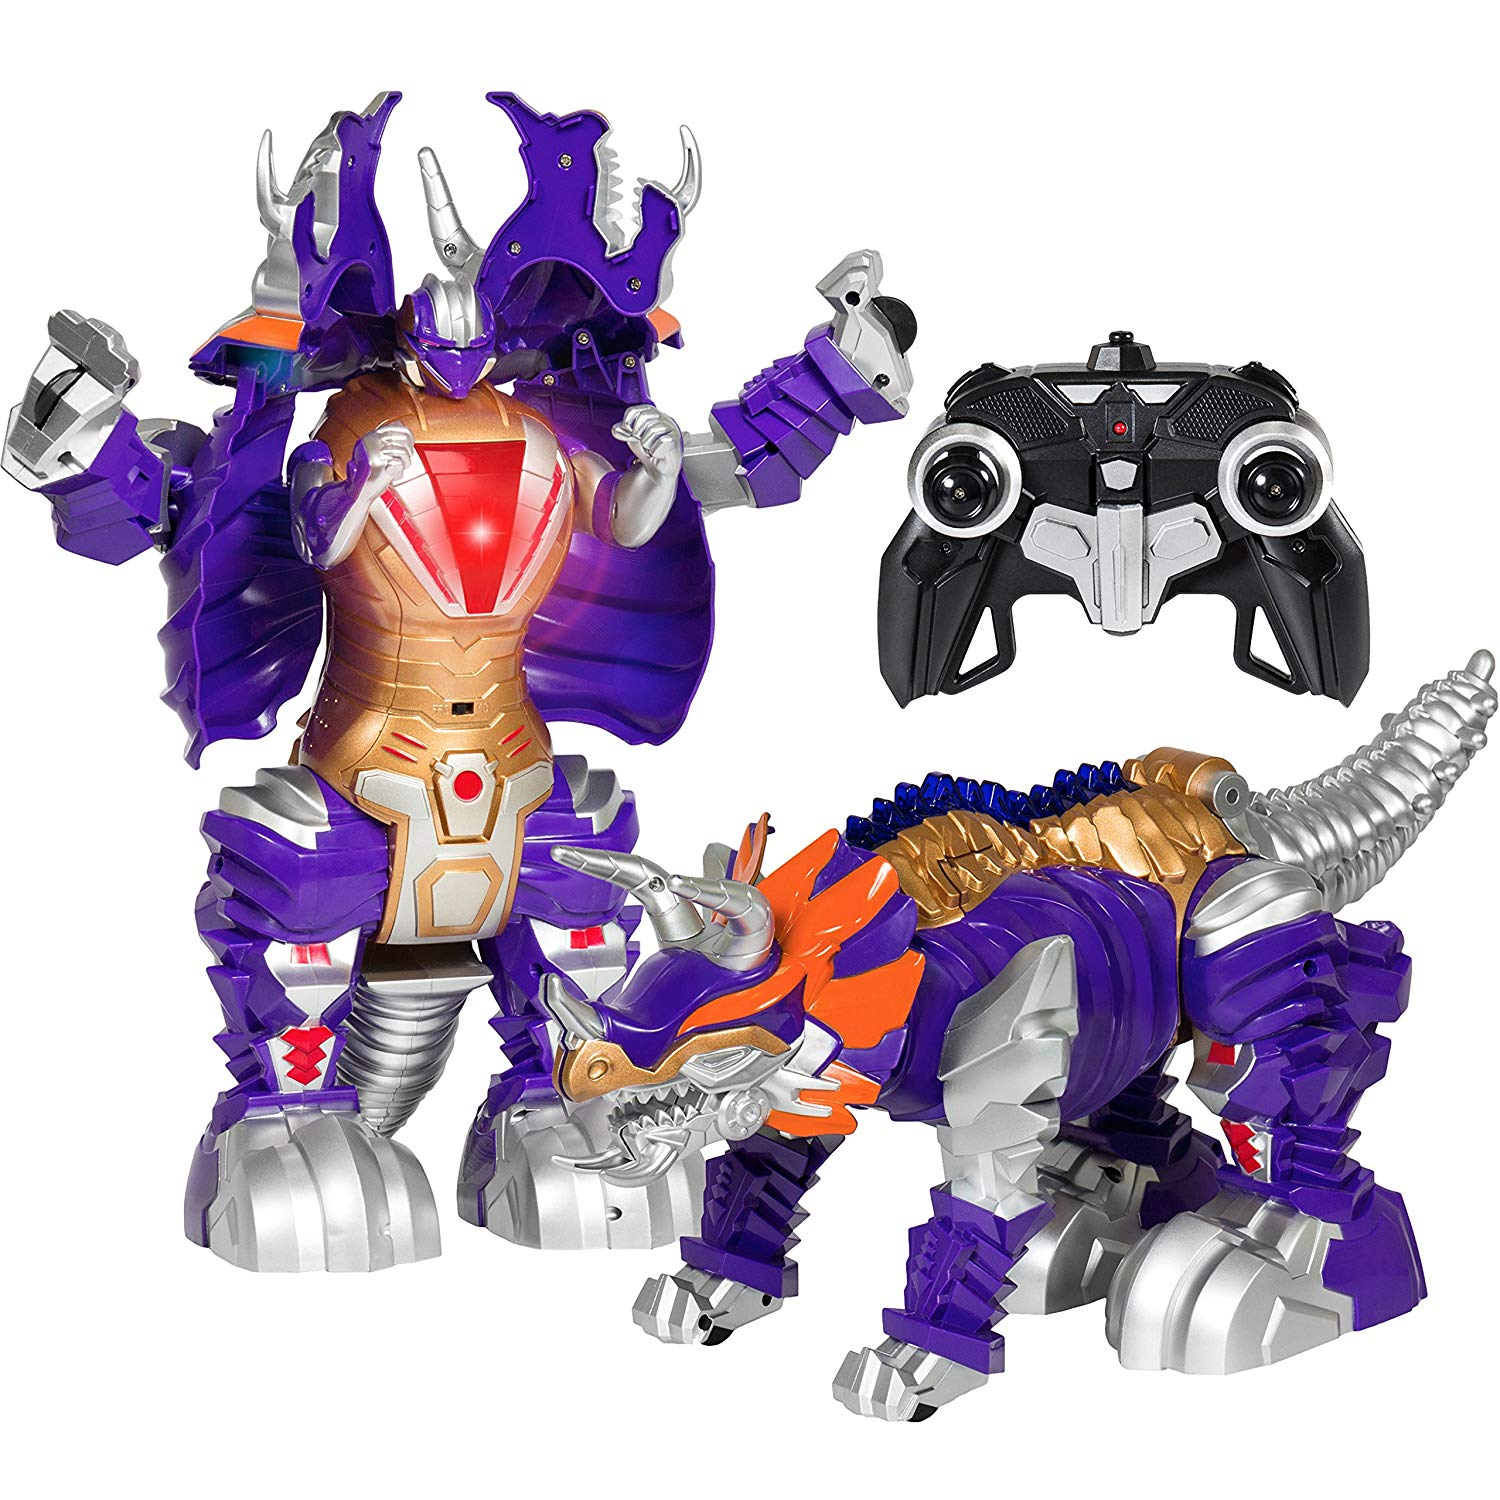 Kids Transformer Remote Control Robot Dinosaur Car w/USB Charger, Lights, and Sounds -Purple/Gold